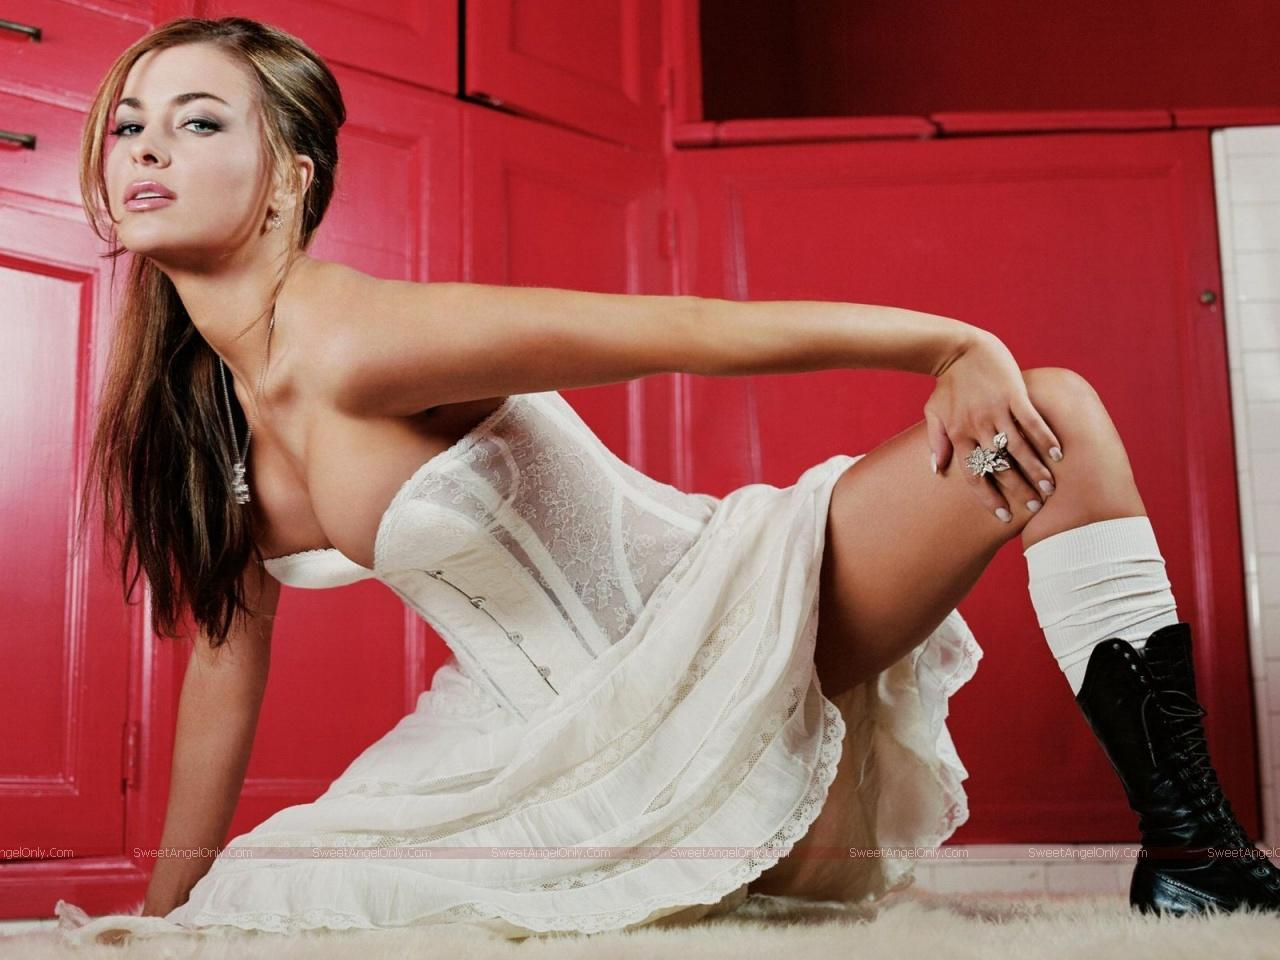 Think, Carmen electra naked wallpaper understood not